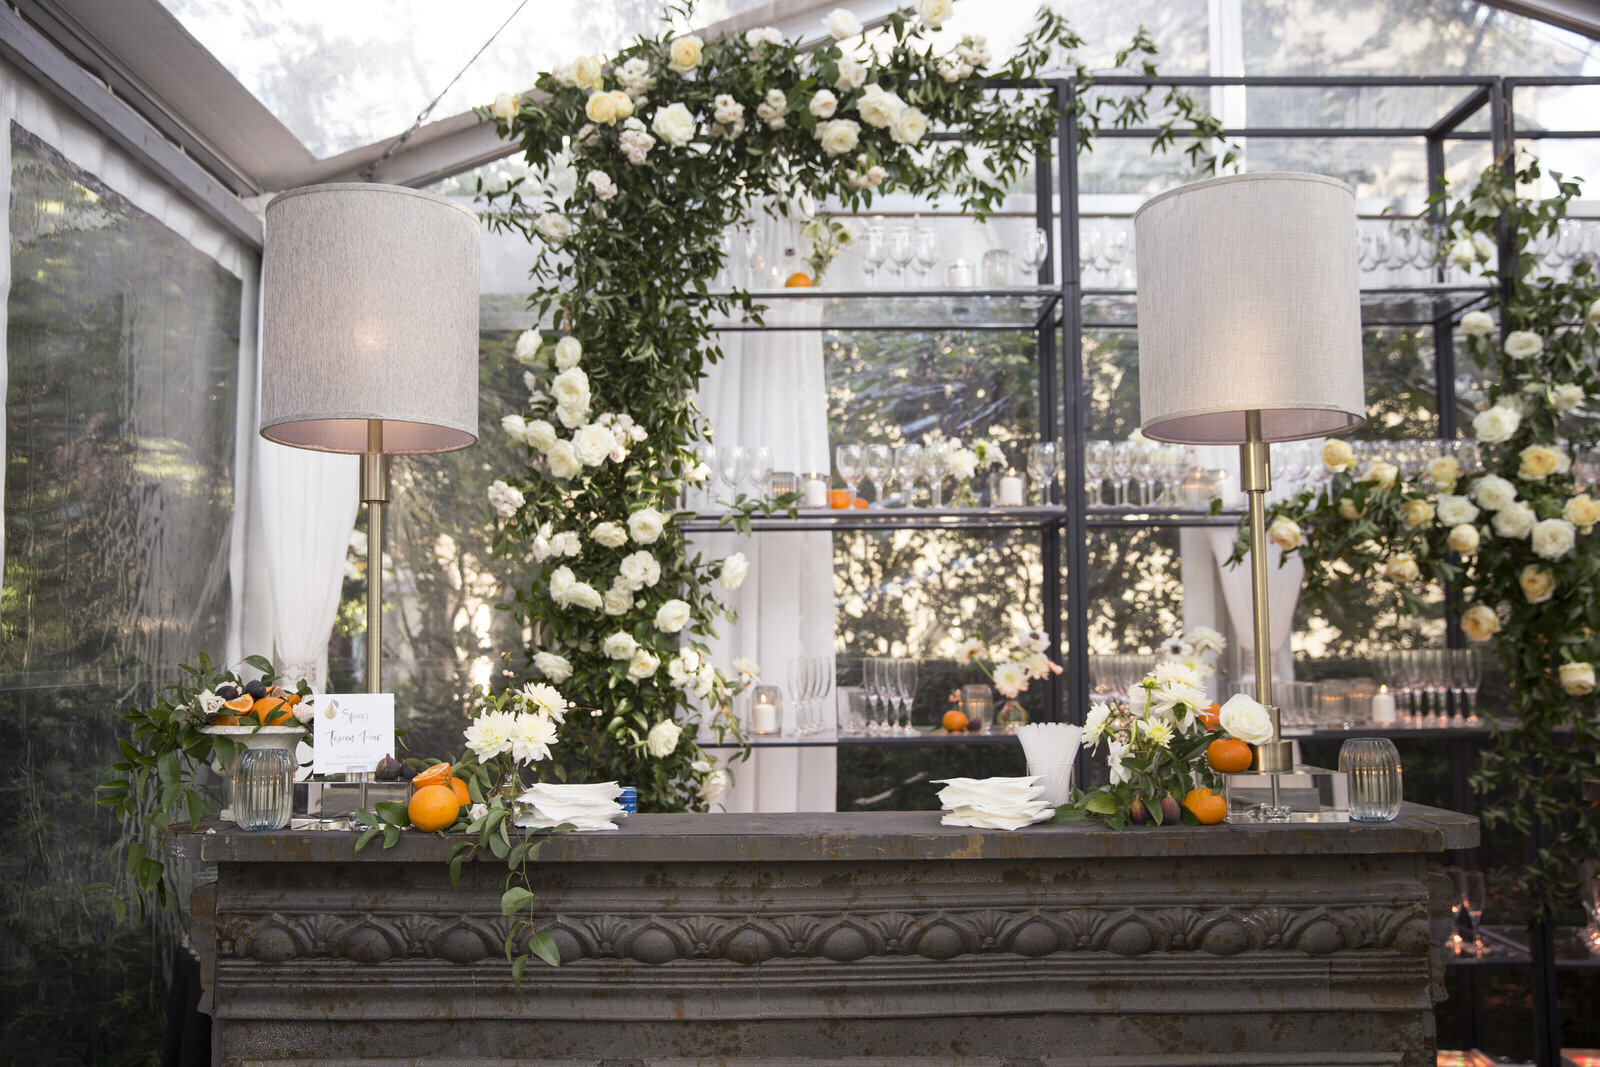 Floral installation on bar back with styled fruit and florals through out the bar.  Rentals provided by Events in Bloom. Houston, Texas wedding with Jennifer Kaldis of Keely Thorne Events. Maxit Flower Design.